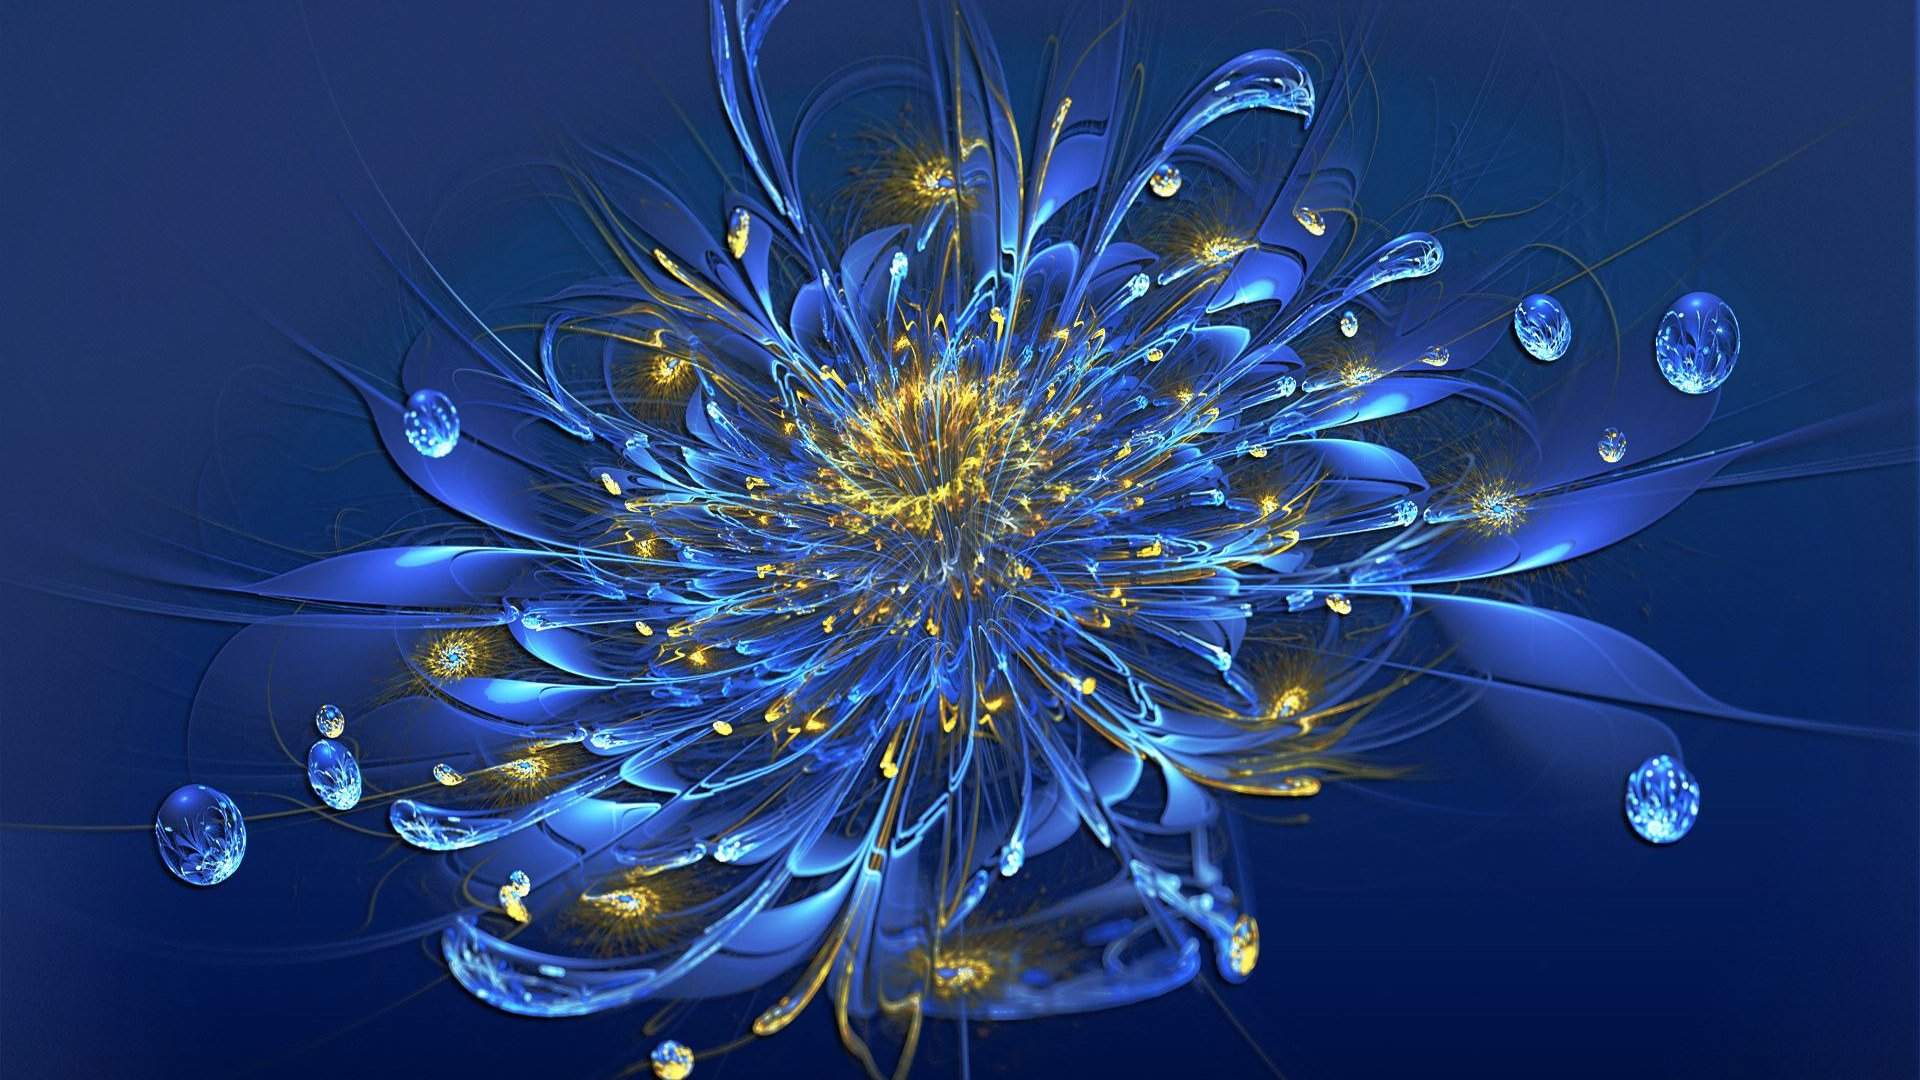 3d hd 1920x1080 desktop wallpapers wallpapersafari for Immagini desktop hd 3d